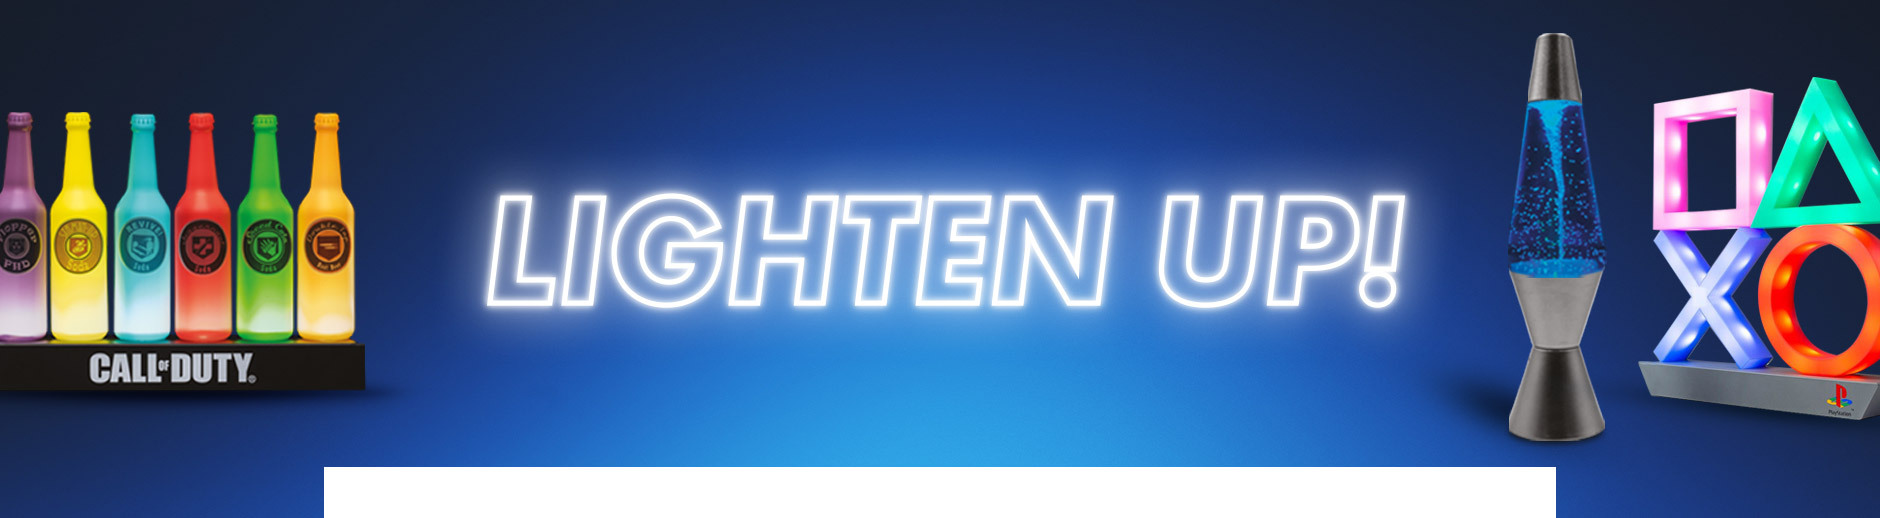 Lighten up your life with our range of lght up tech, gadgets and more fun stuff!